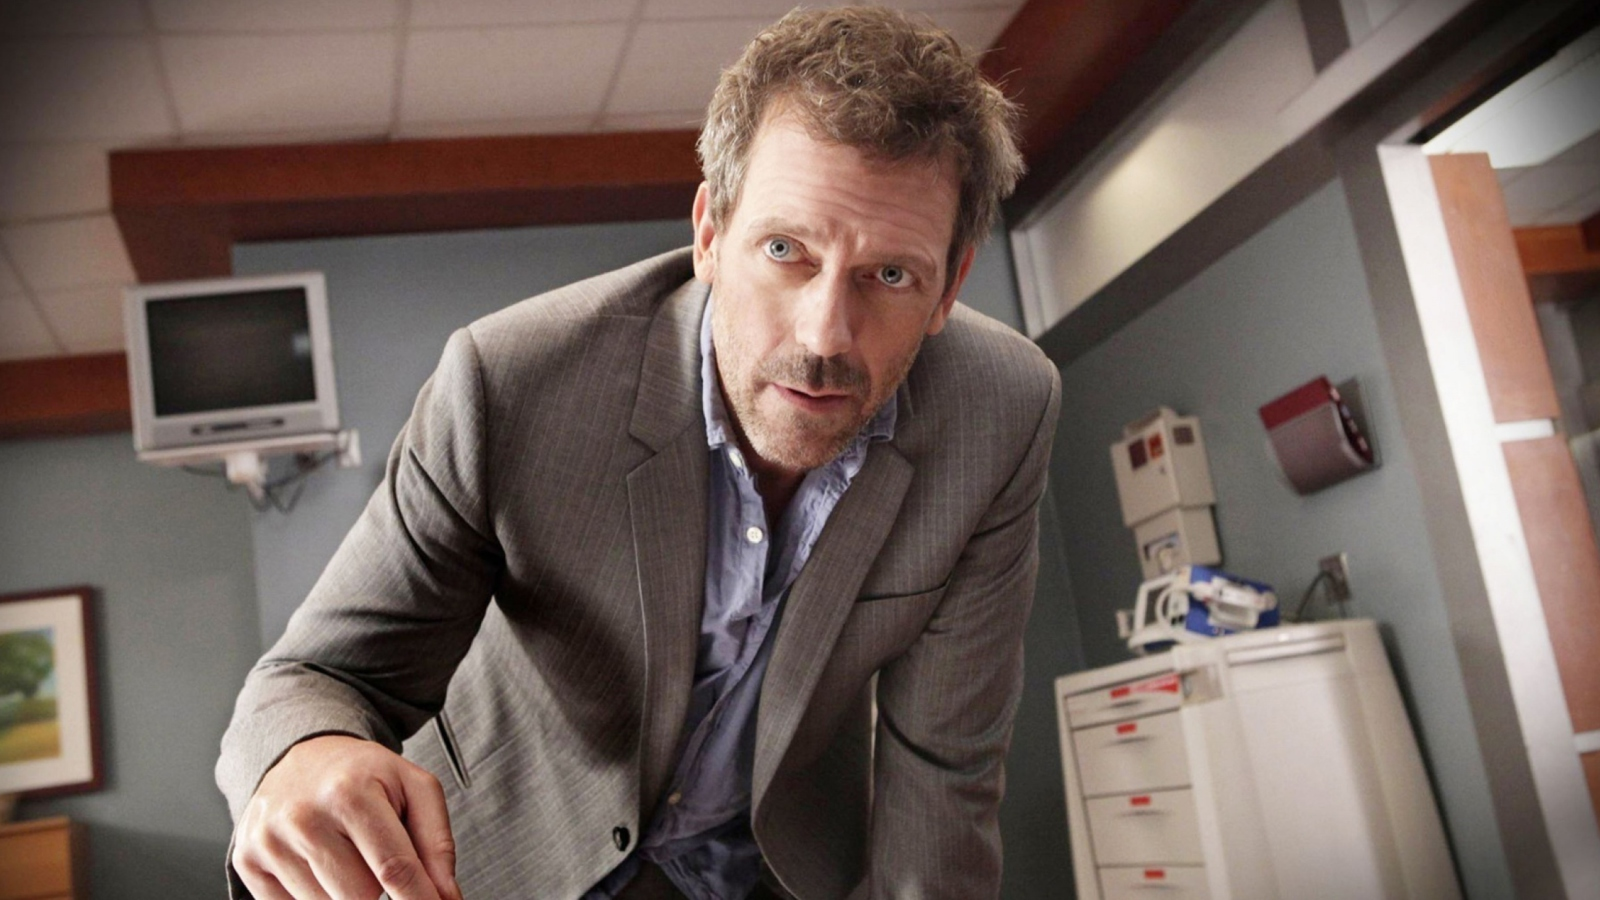 Dr Gregory House screenshot #1 1600x900